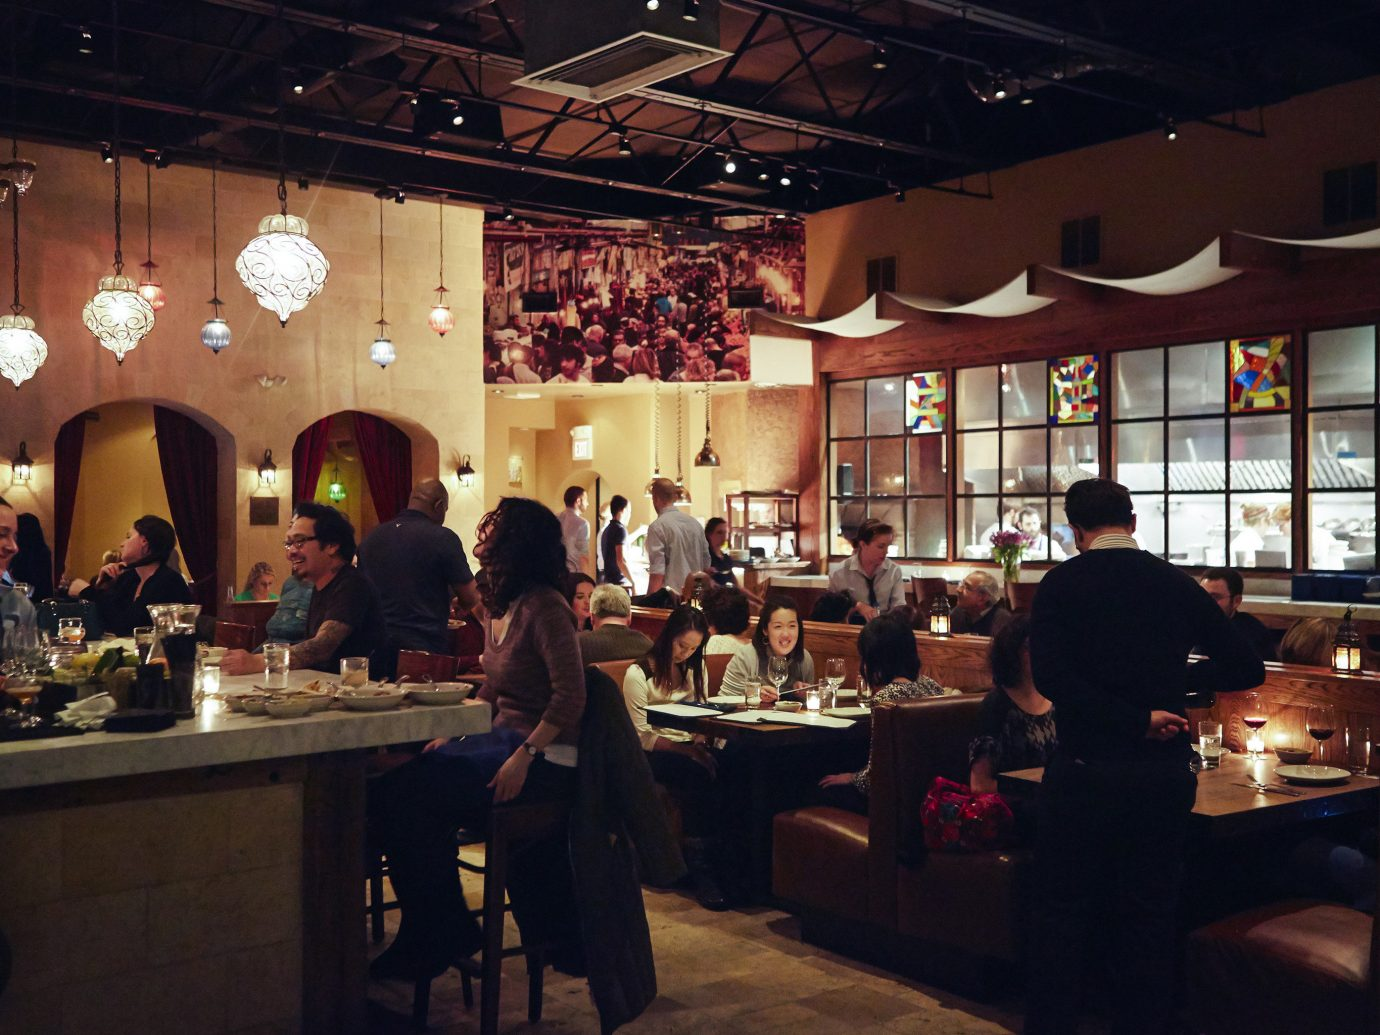 Food + Drink Phildelphia indoor person ceiling restaurant people interior design group café Bar coffeehouse cuisine function hall